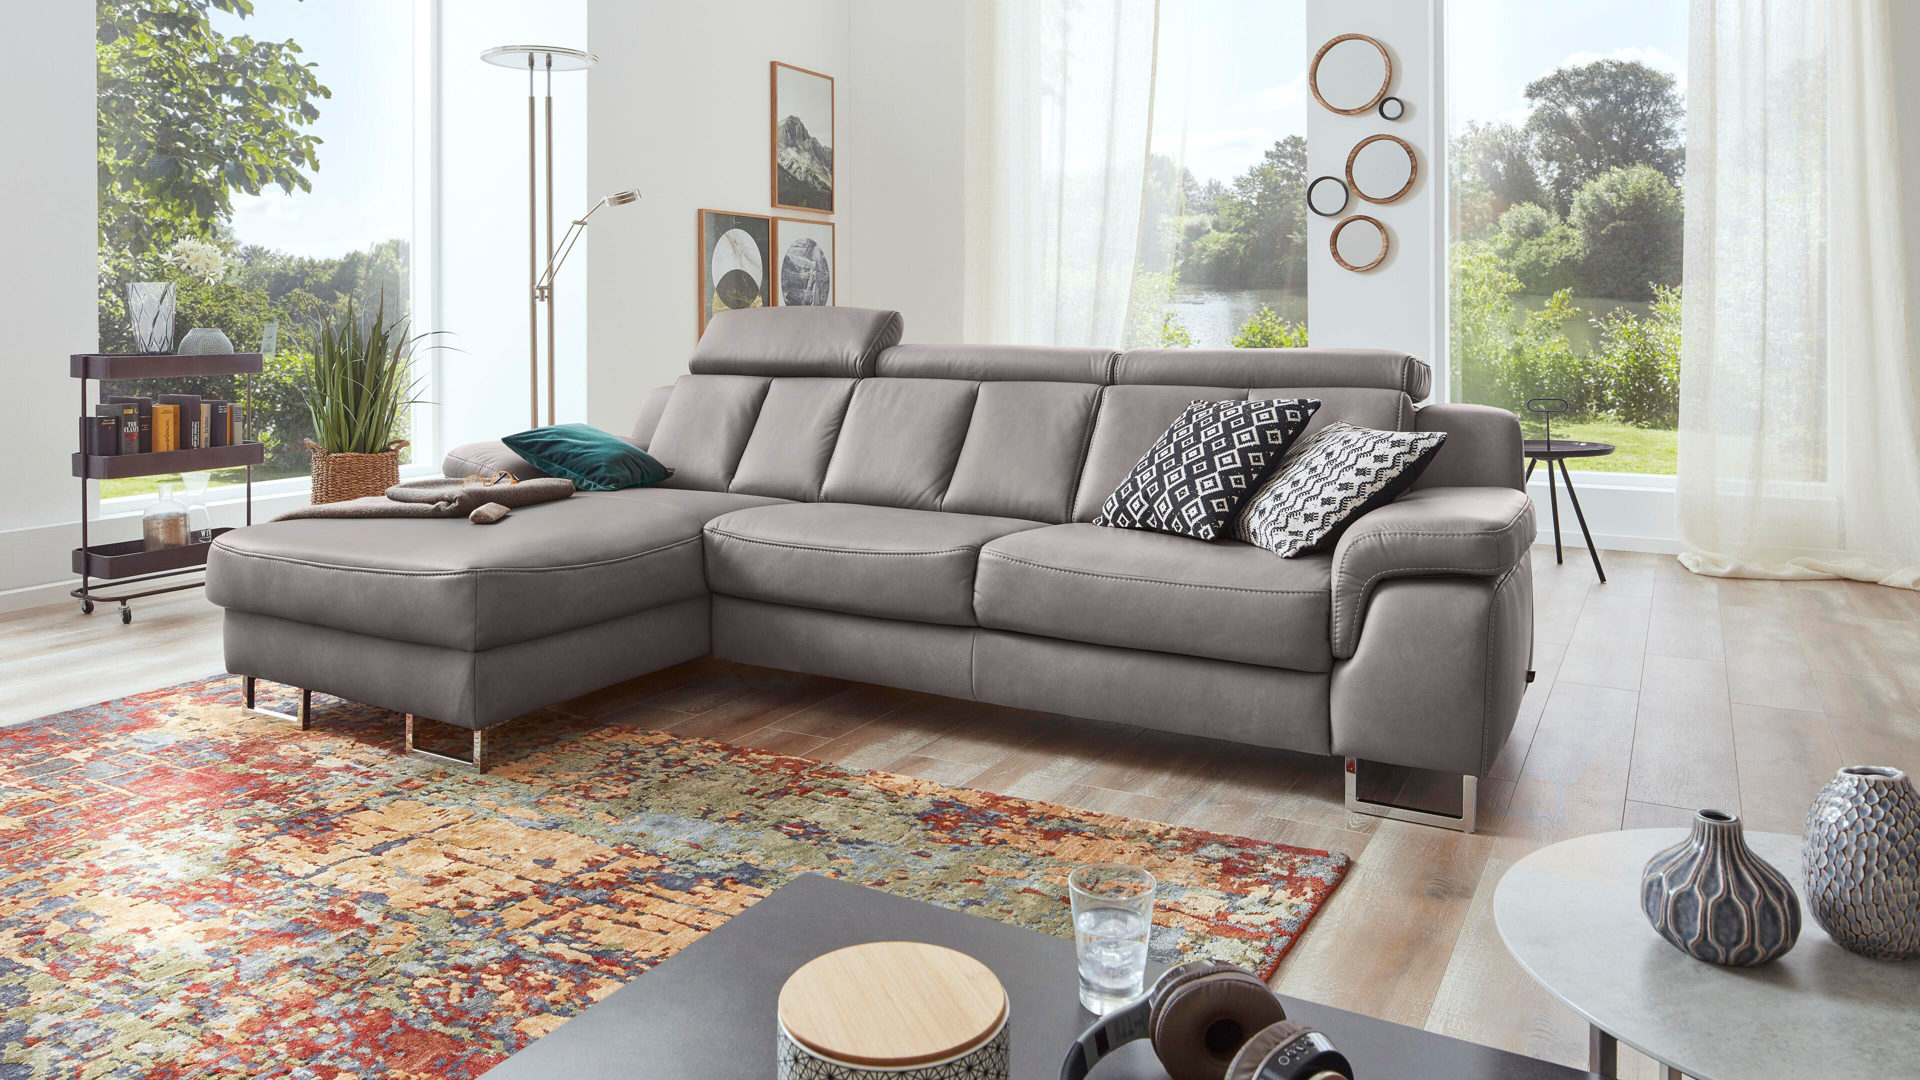 Ecksofa Interliving aus Leder in Grau Interliving Sofa Serie 4050 – Eckkombination graues LongLife-Leder Cloudy & Chromfüße – Schenkelmaß ca. 177 x 289 cm